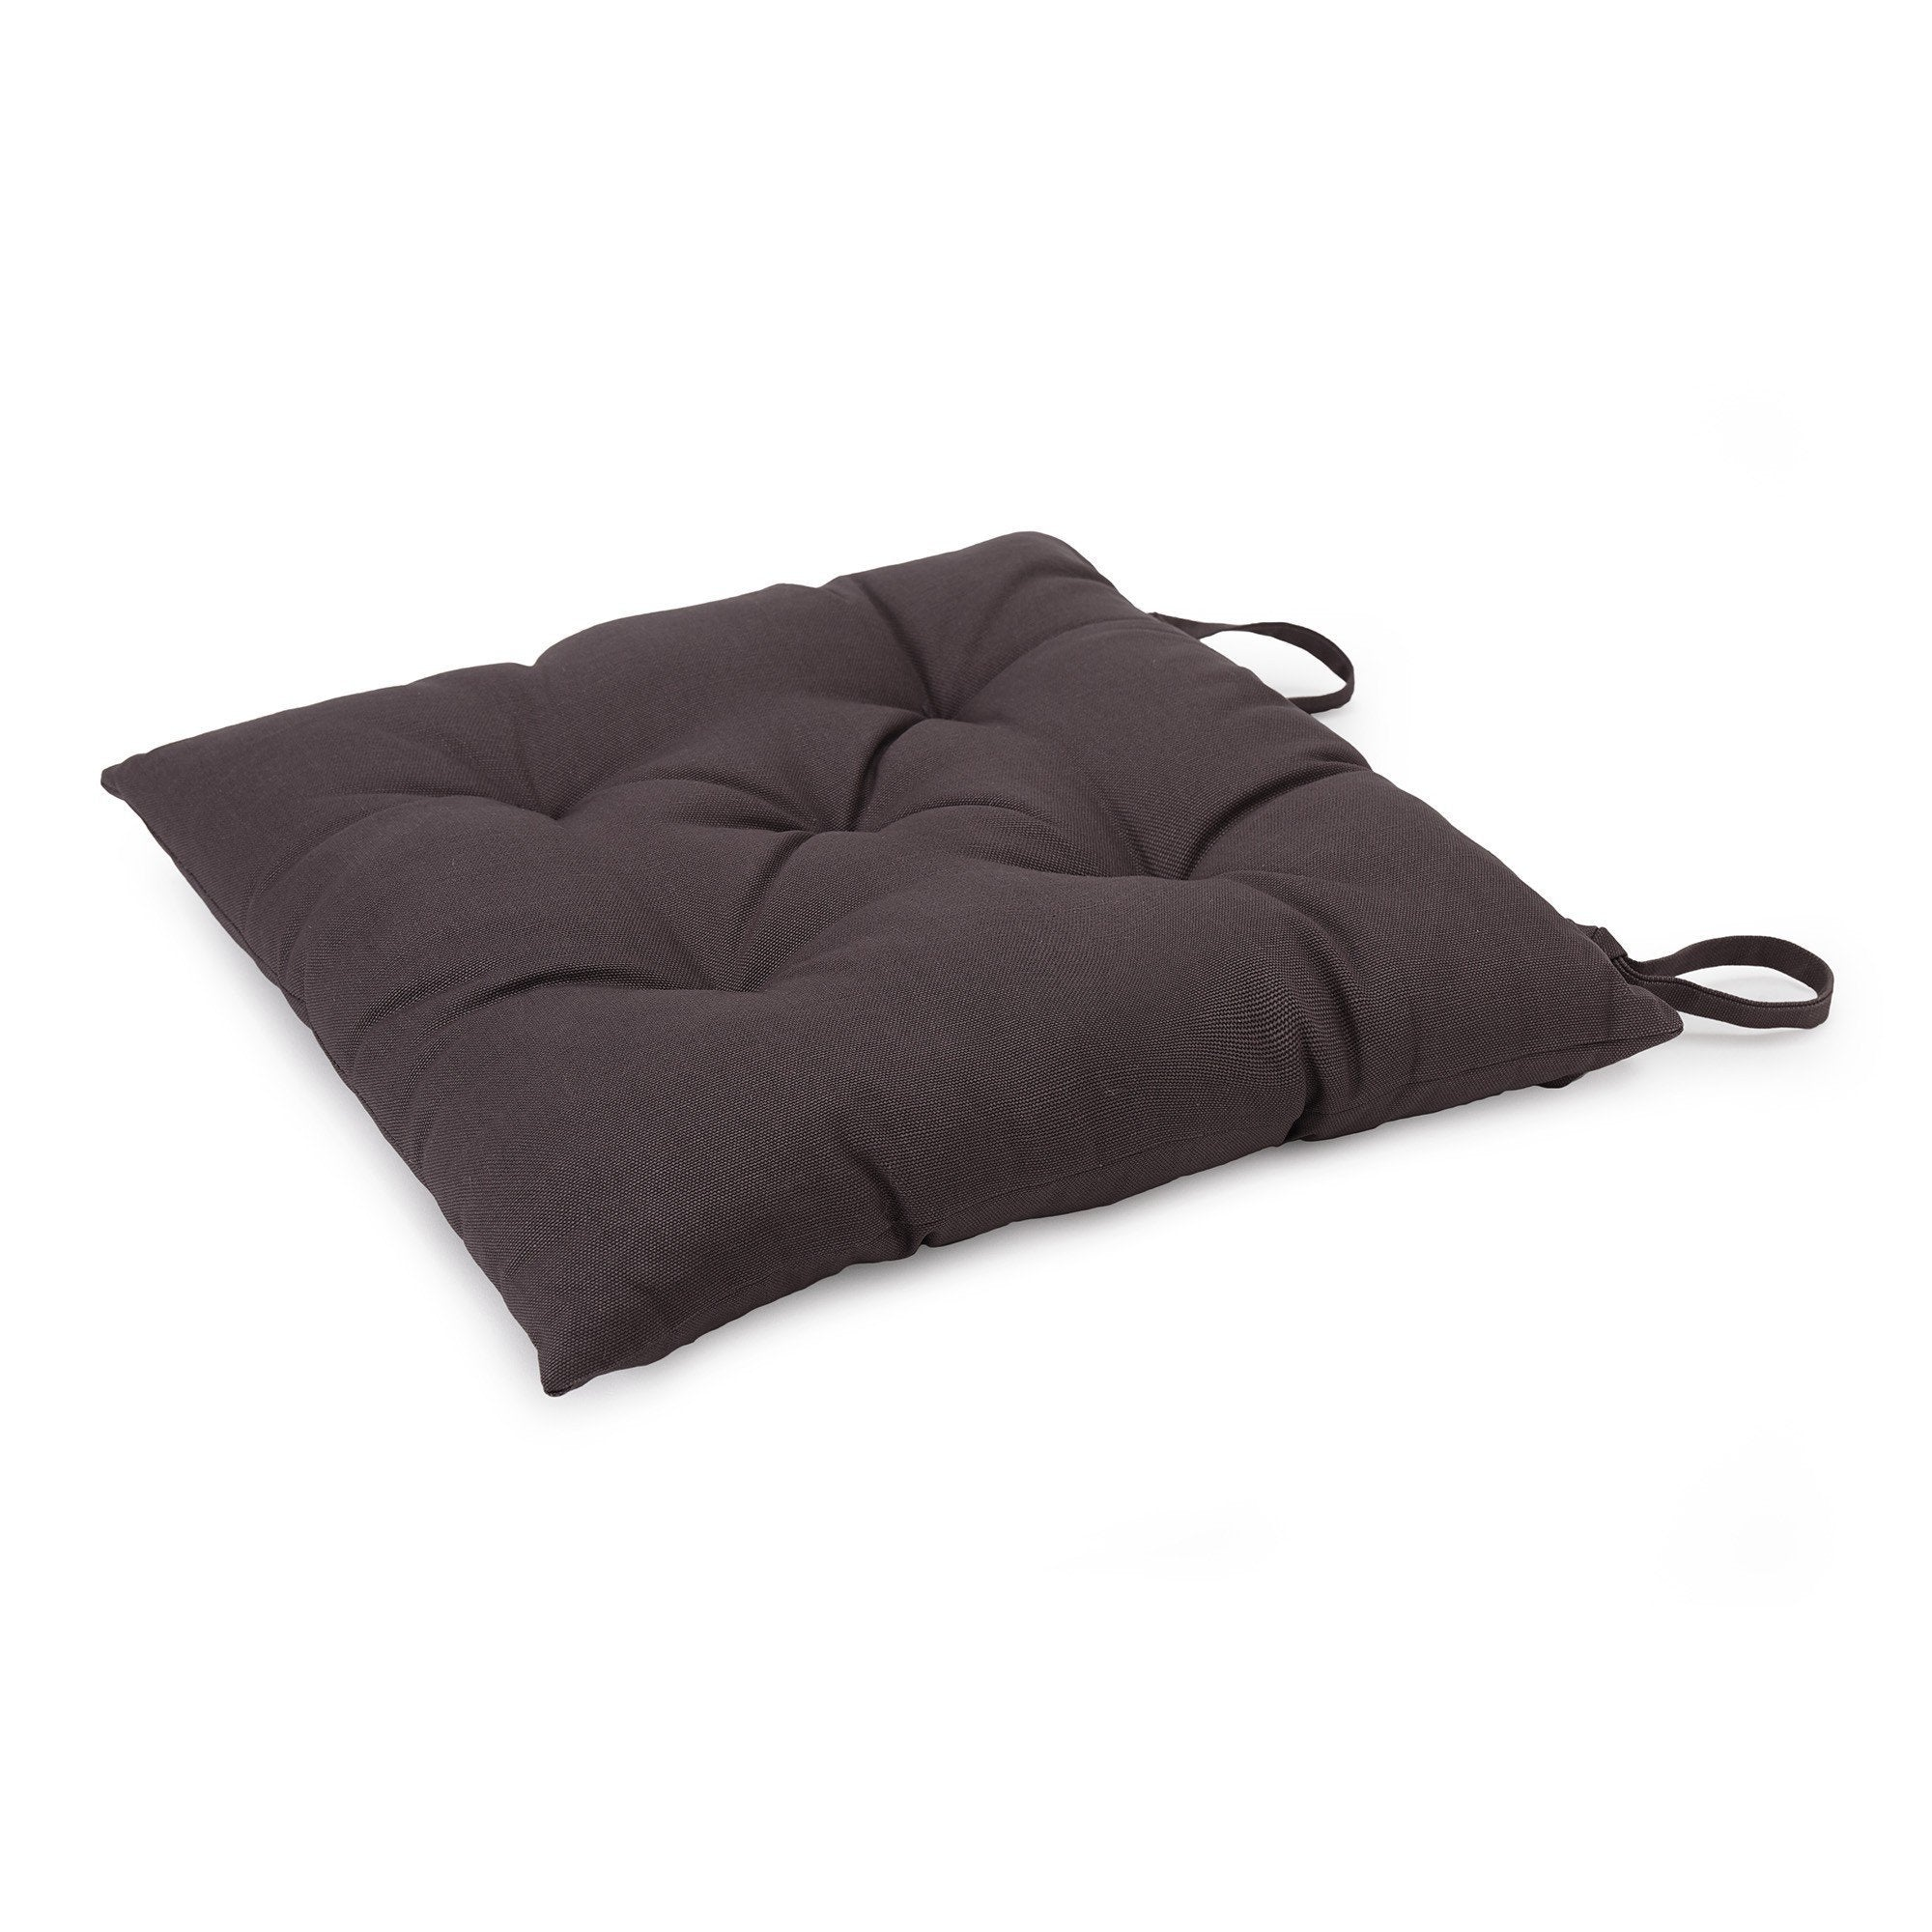 Isaka cushion, dark grey, 100% cotton & 100% polyester